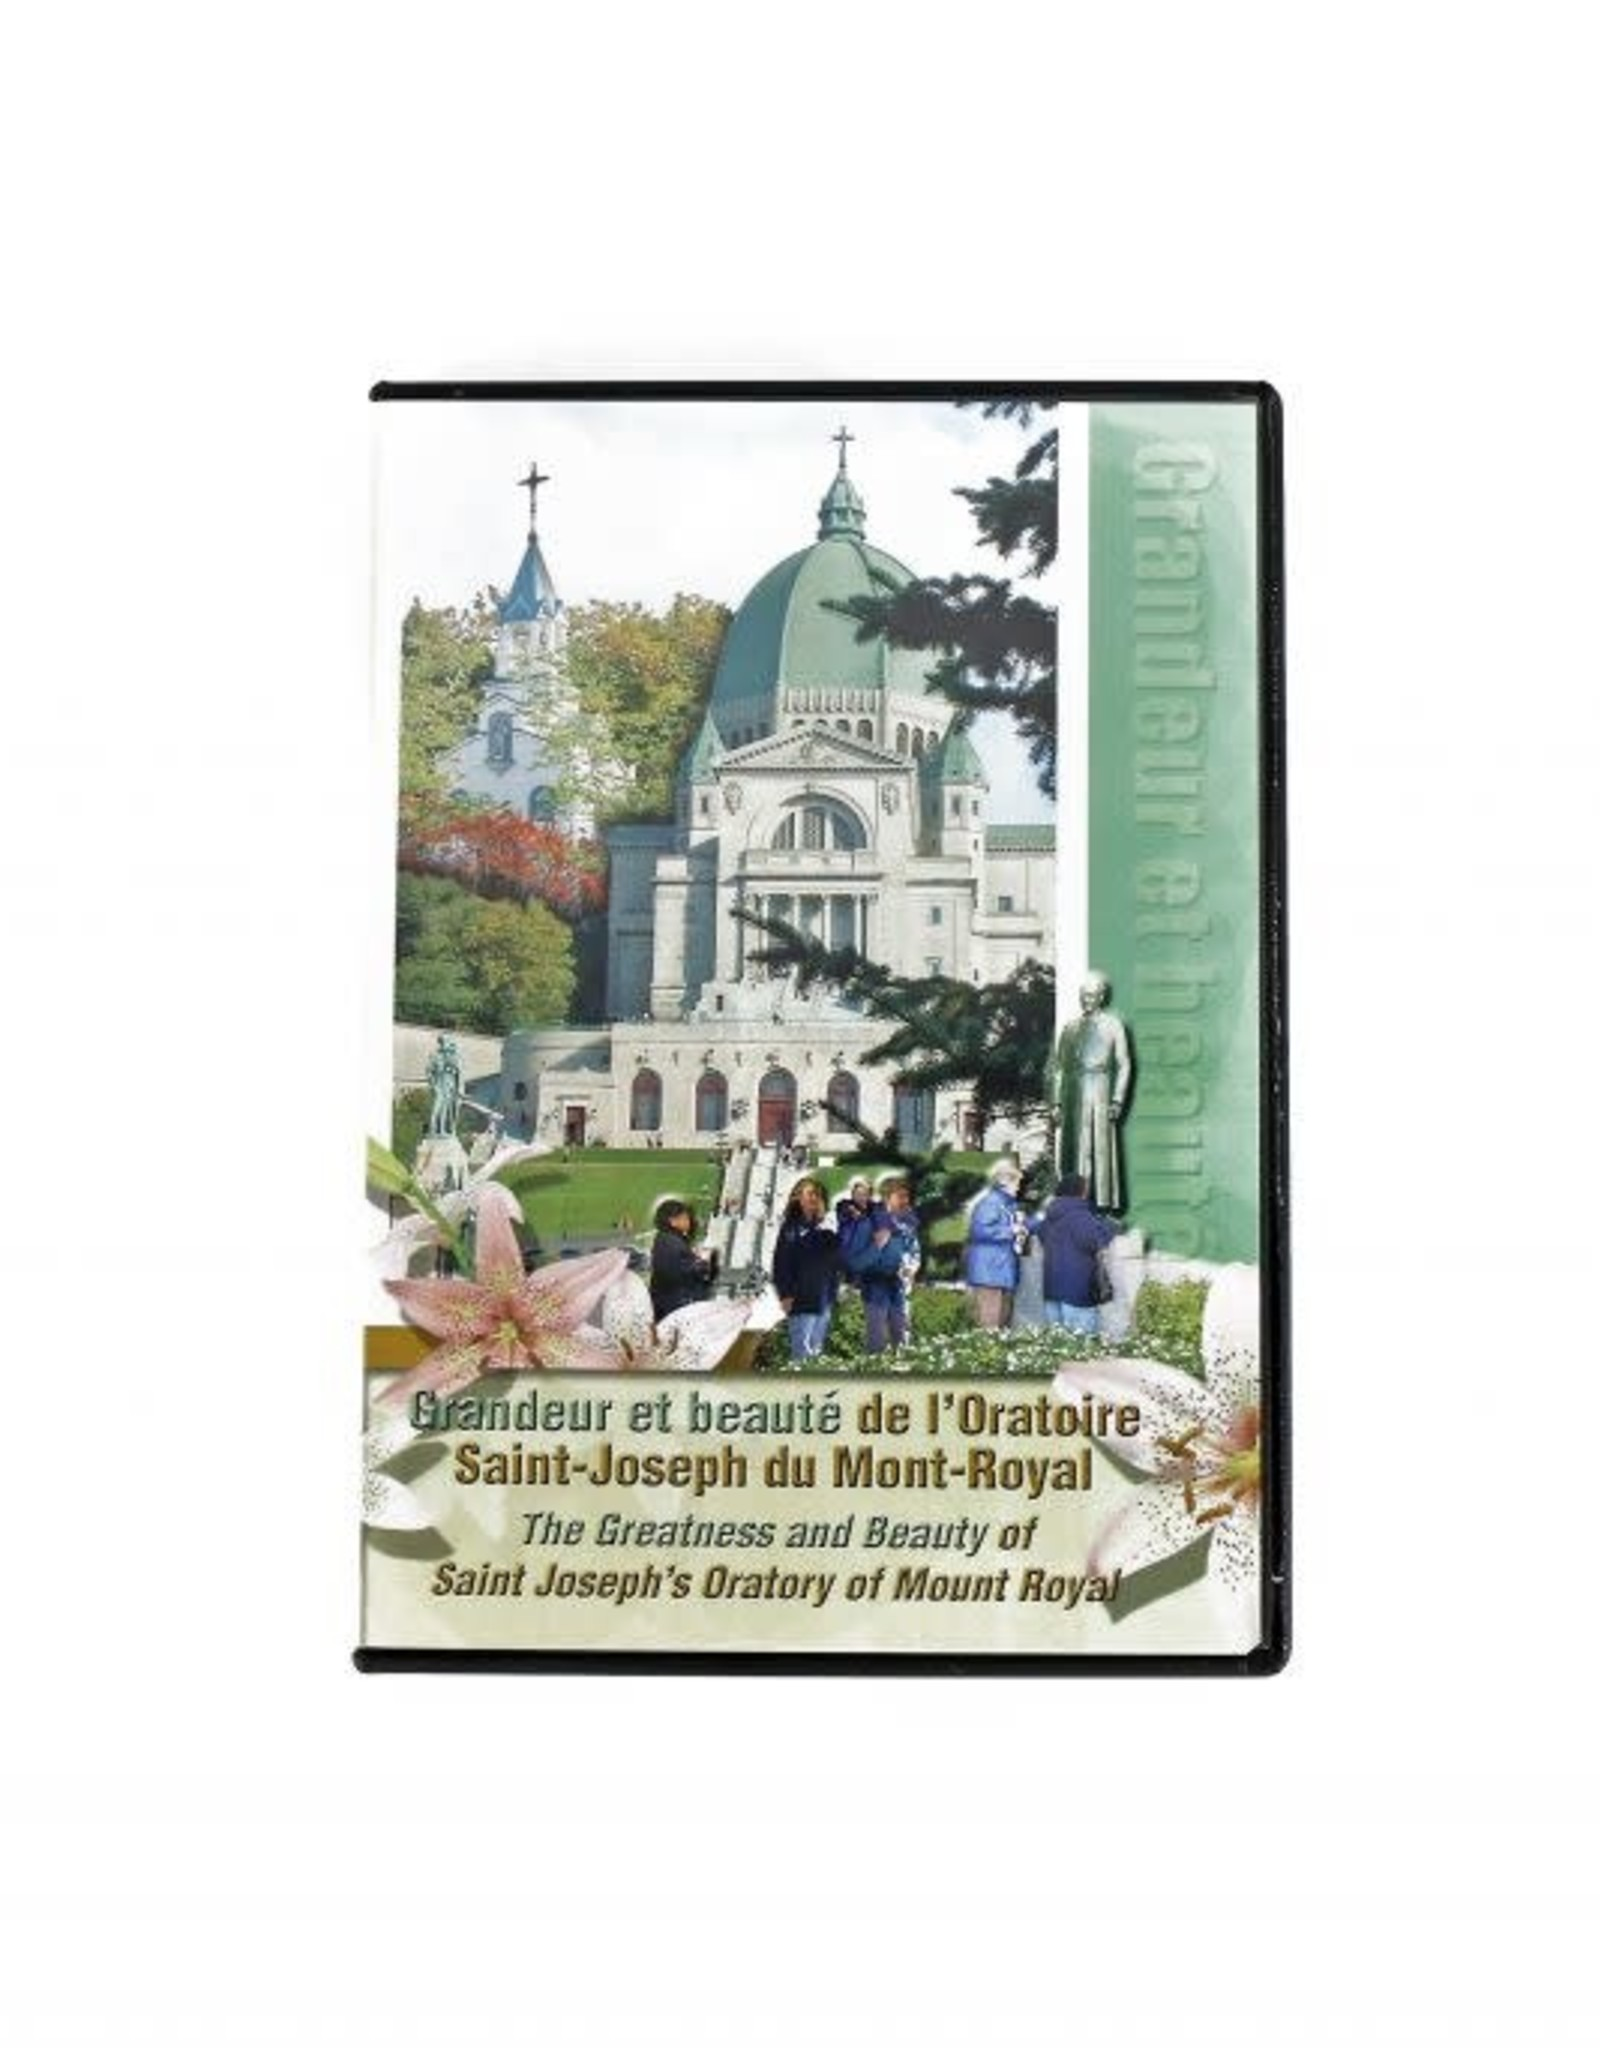 L'Oratoire Saint-Joseph du Mont-Royal The Greatness and Beauty of Saint Joseph's Oratory (DVD)